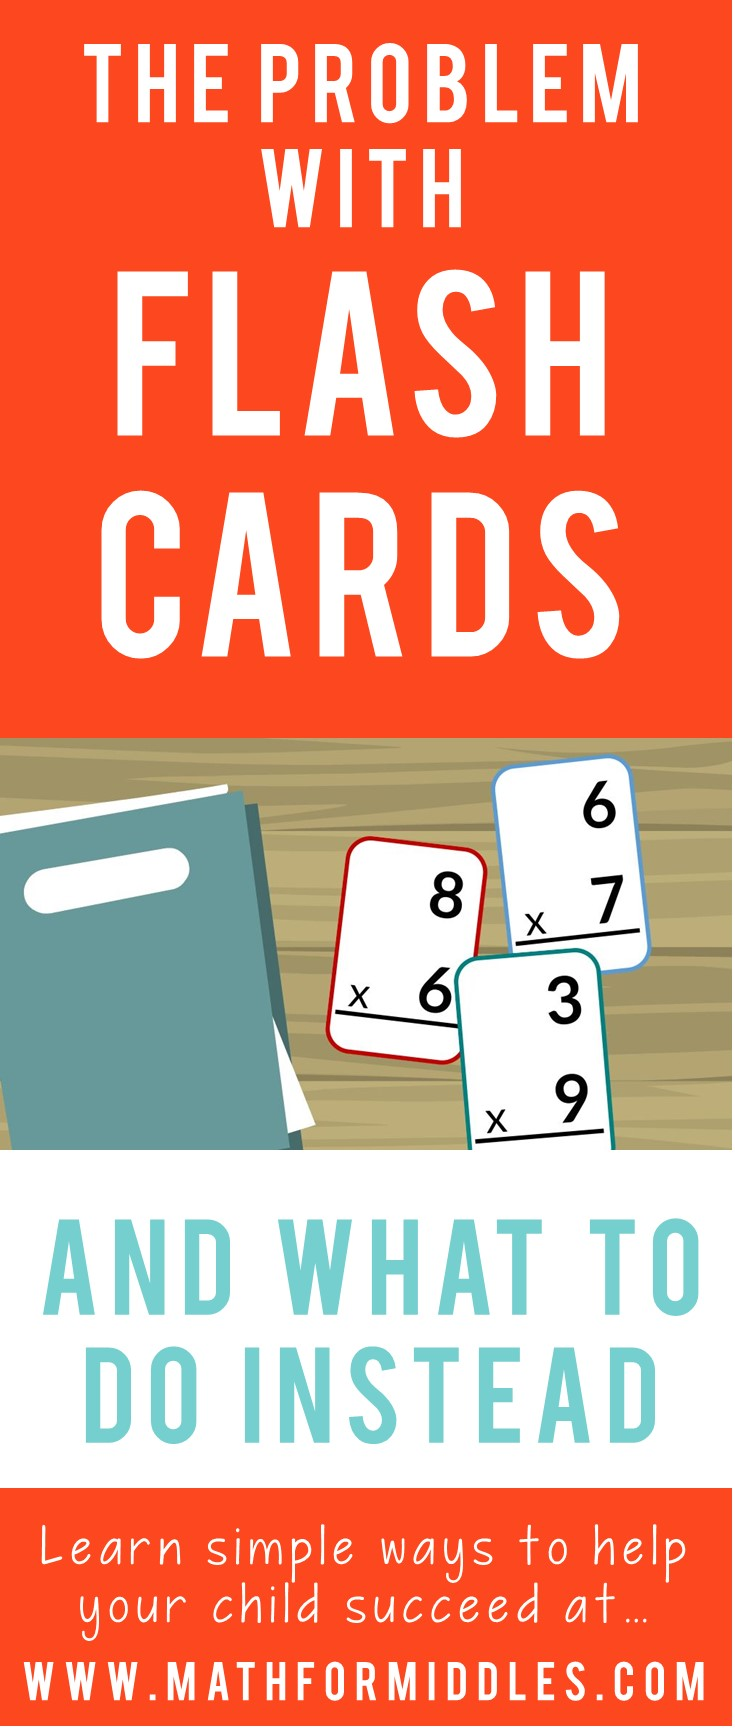 The Problem with Flash Cards and What to Do Instead [003]